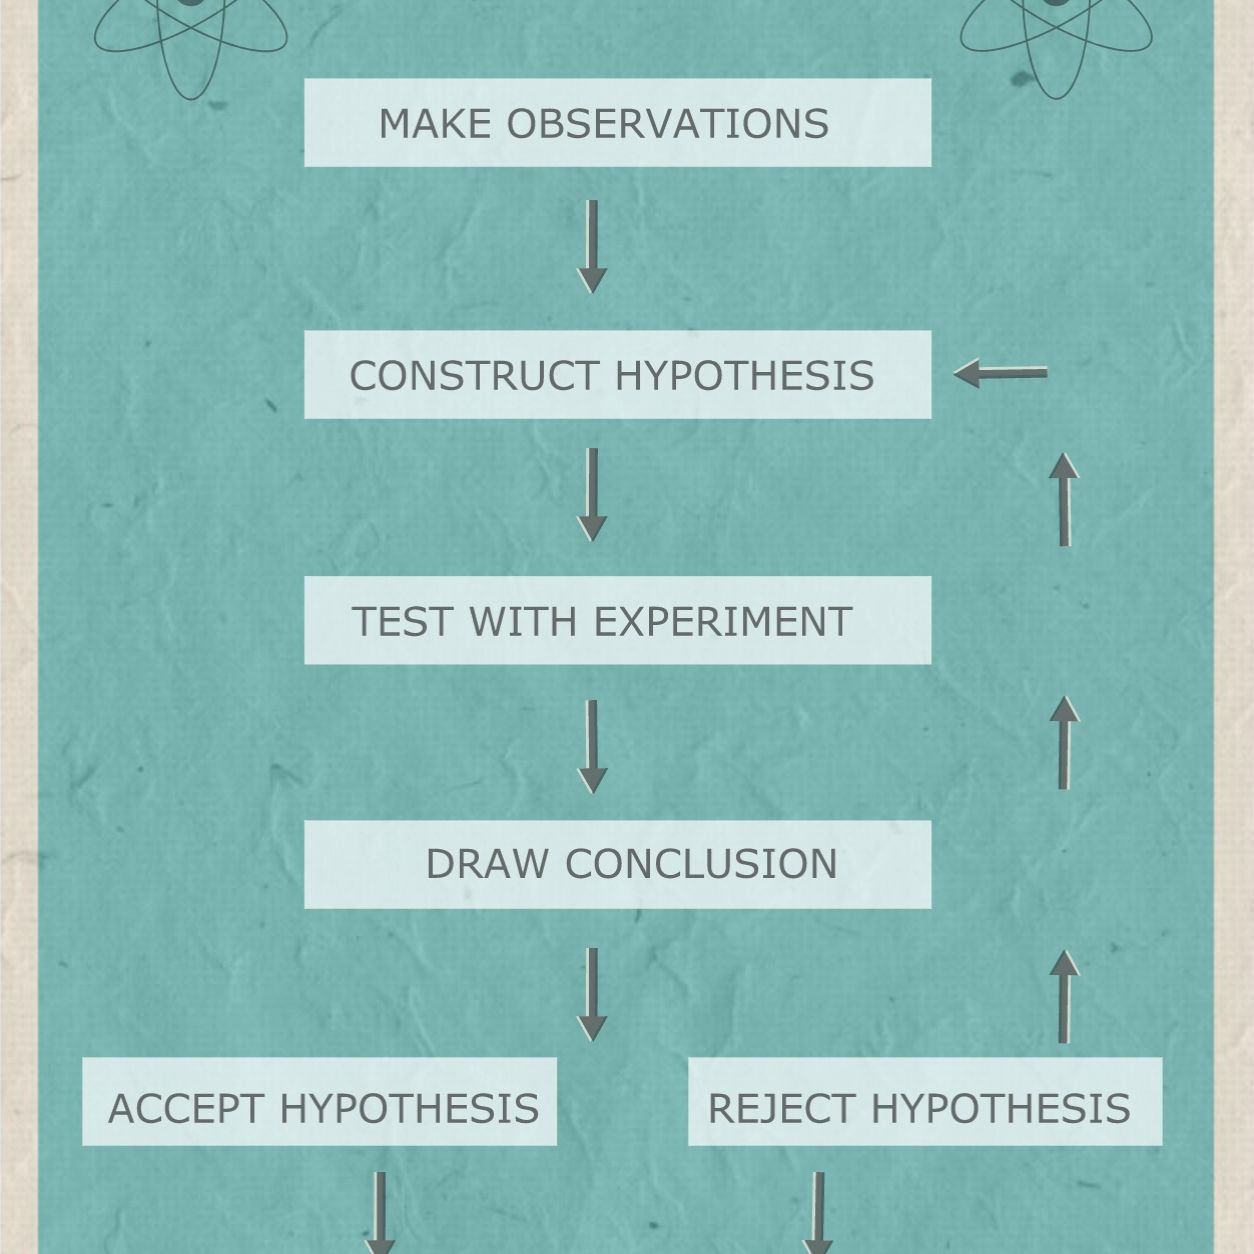 This flow chart diagrams the steps of the scientific method.